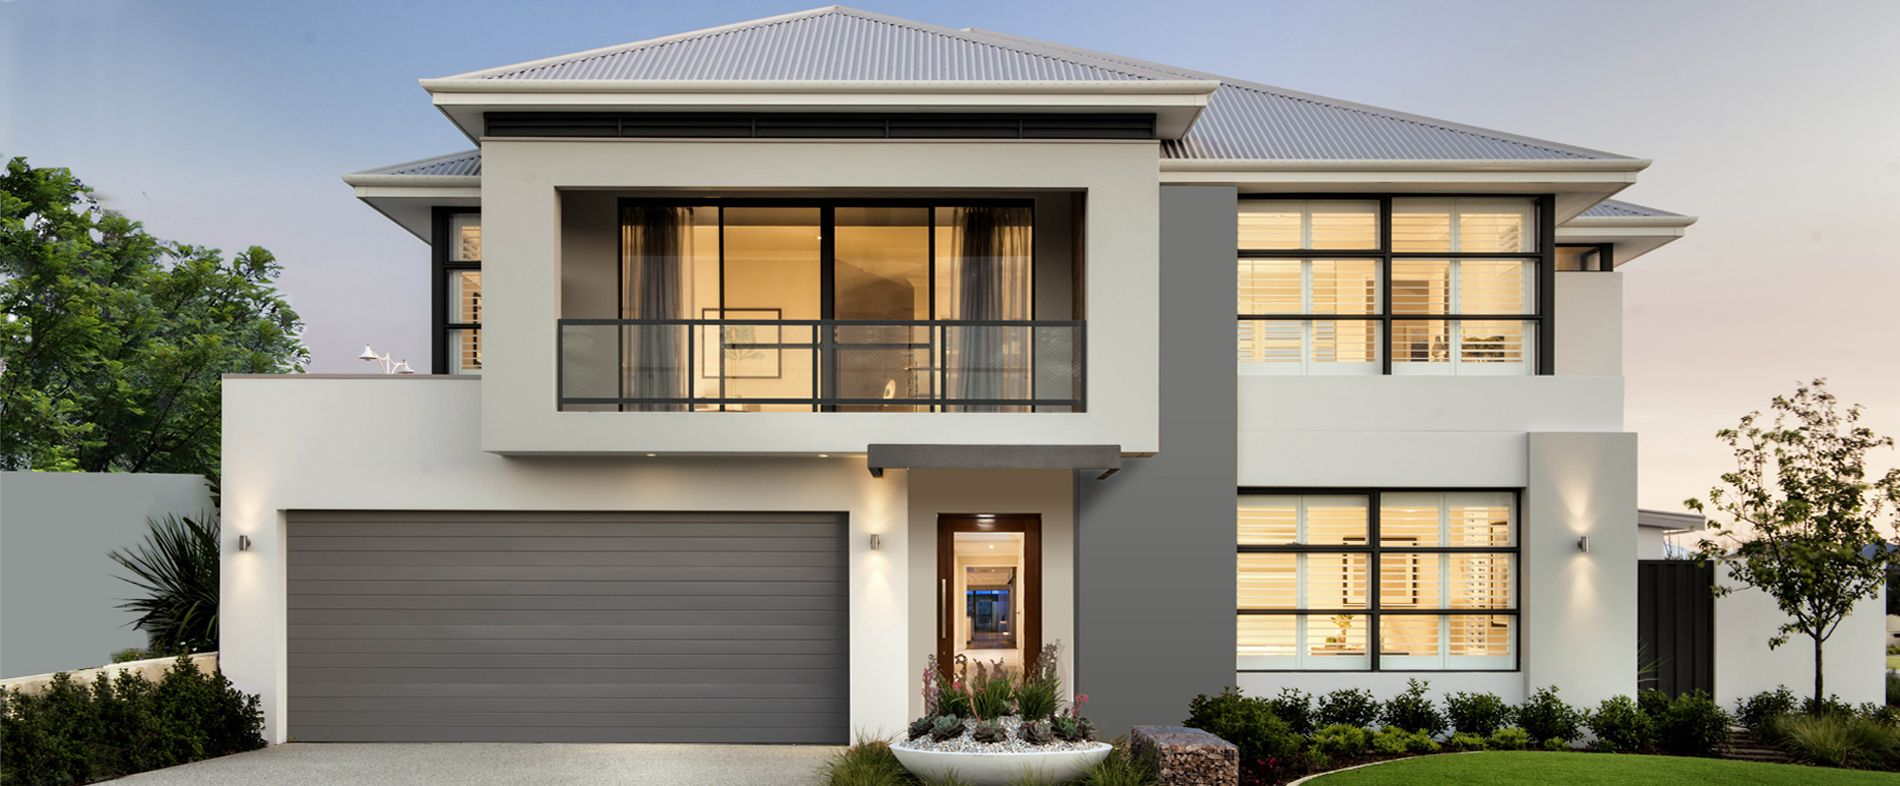 Our Luxury Home Designs Perth, WA | Peter Stannard Homes | Ants ...